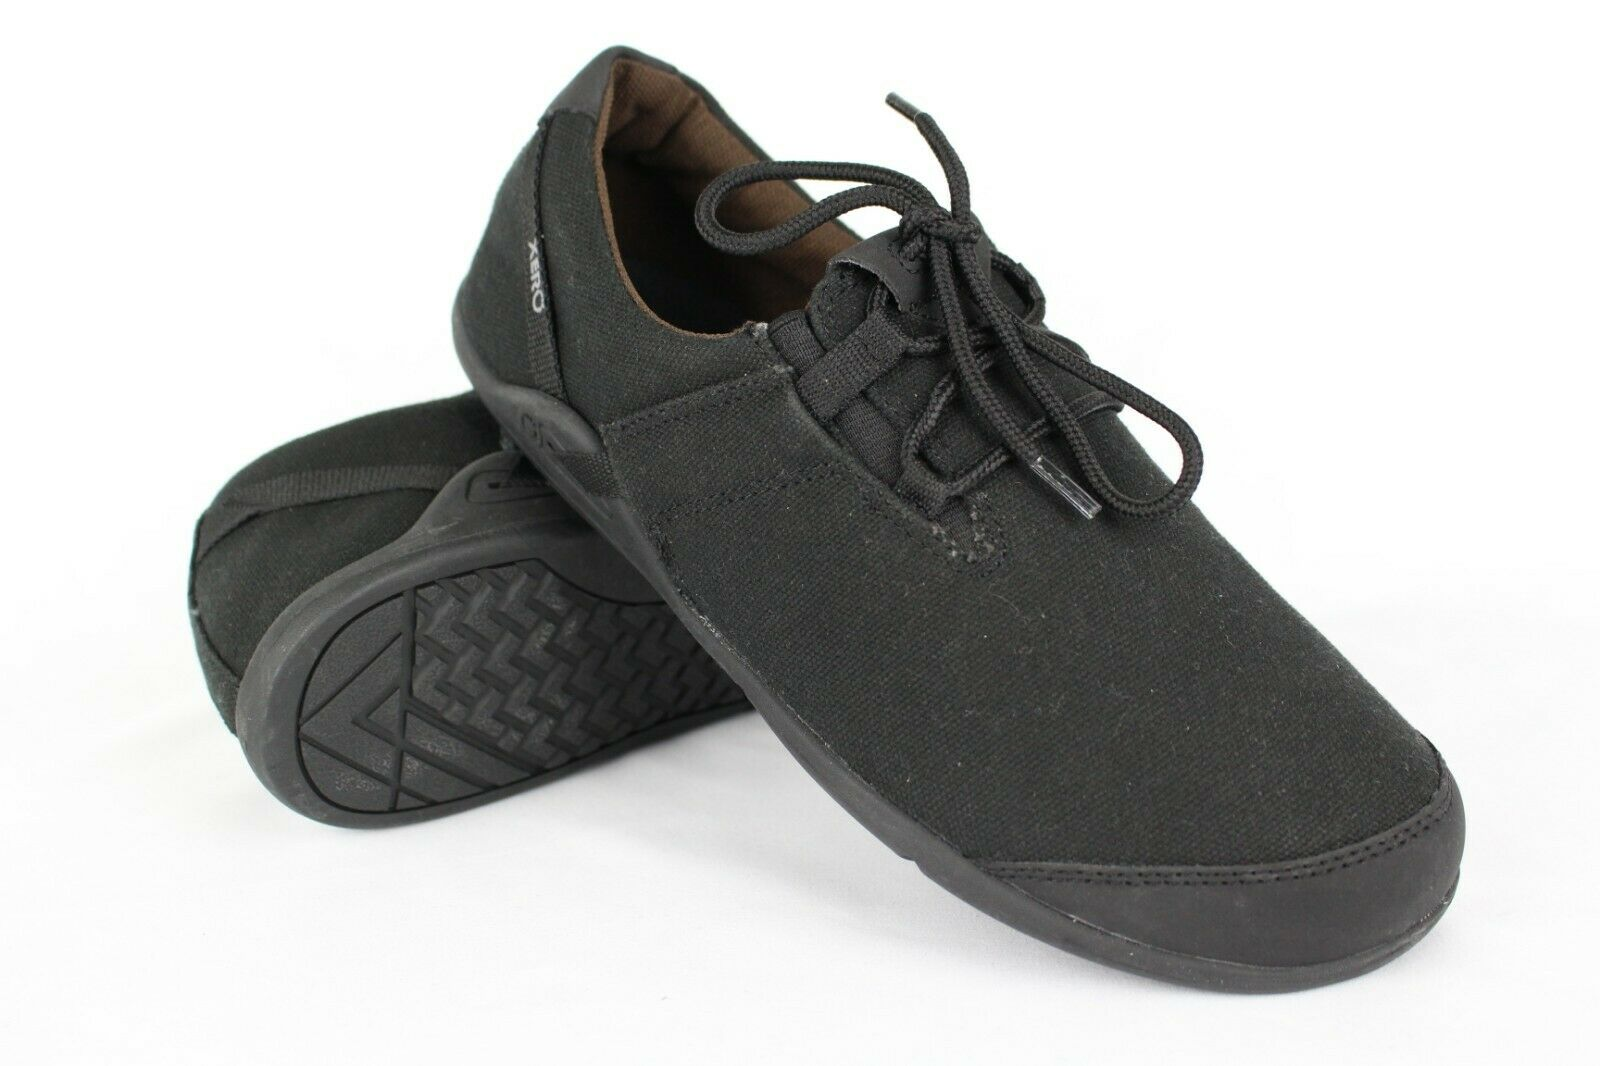 Xero shoes Men's Hana Casual Canvas Barefoot Inspired shoes Size 9 Black